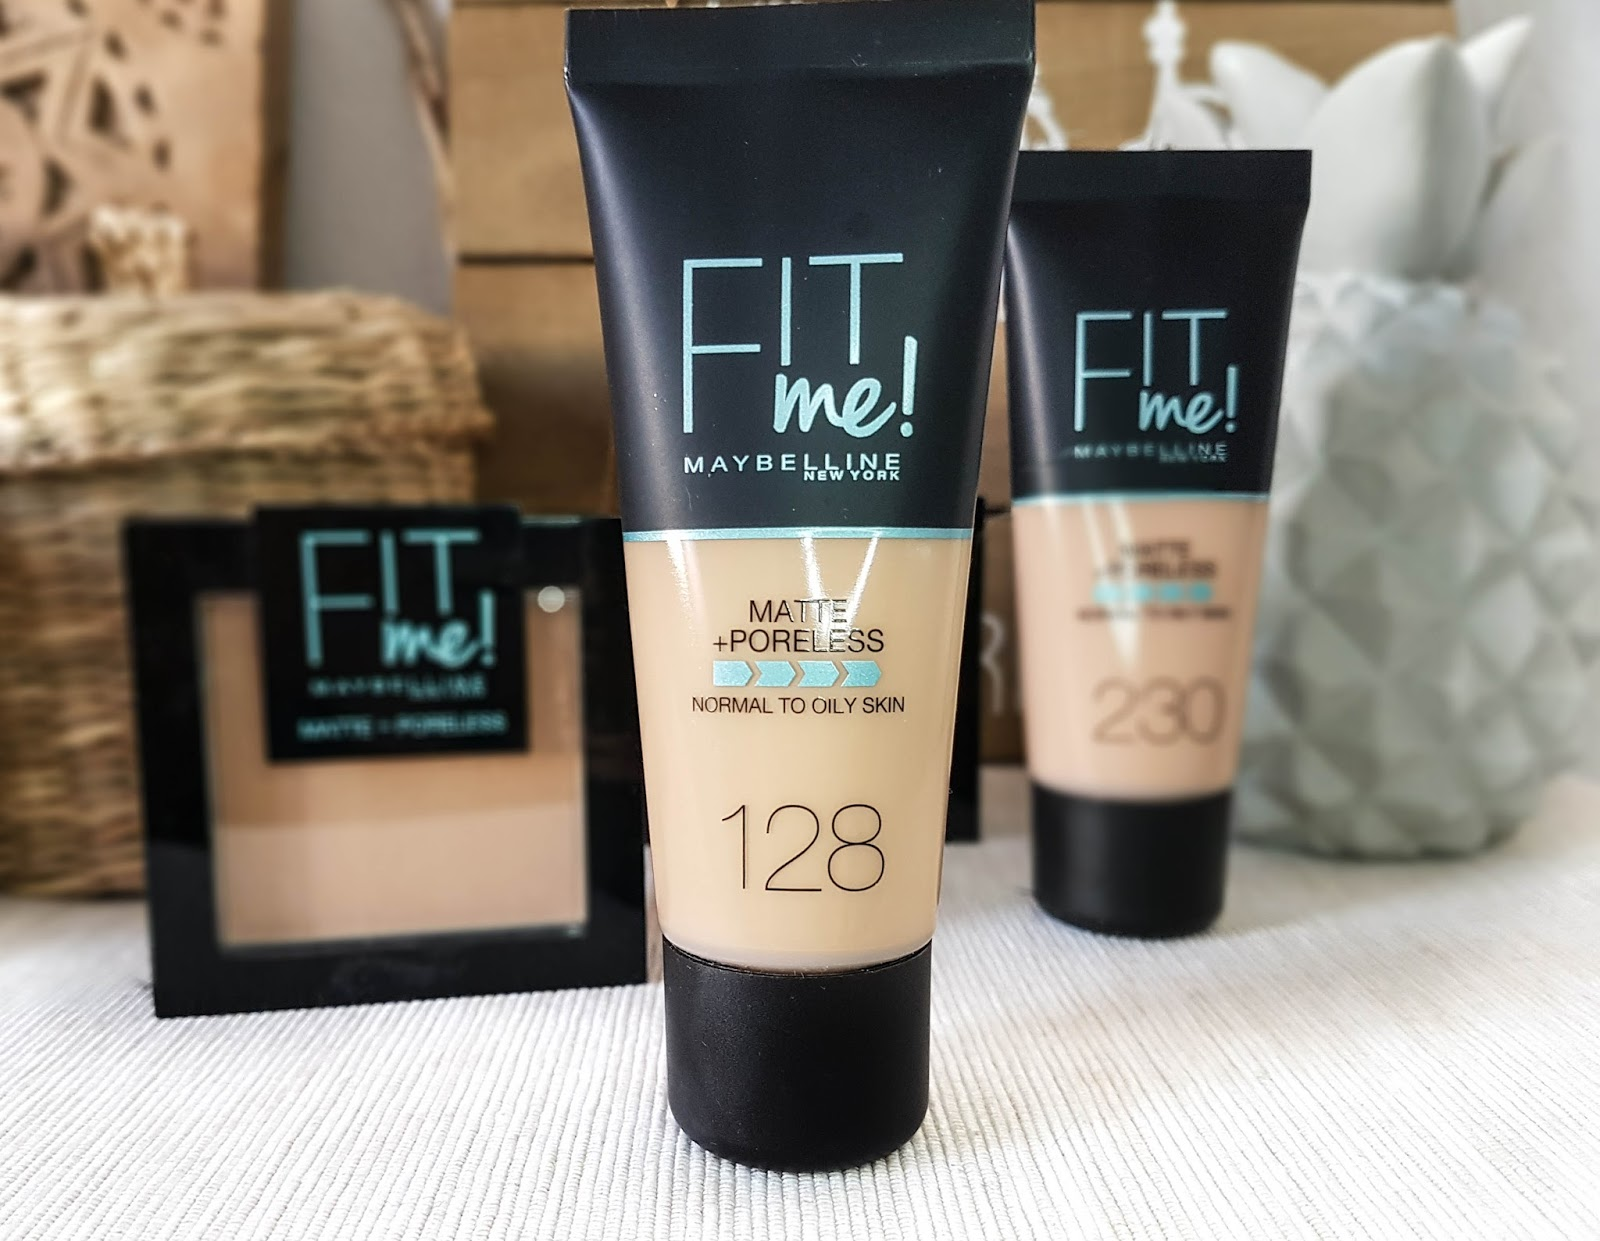 fond_de_teint_fit_me_matte_and_poreless_maybelline_swatch_mama_syca_beaute